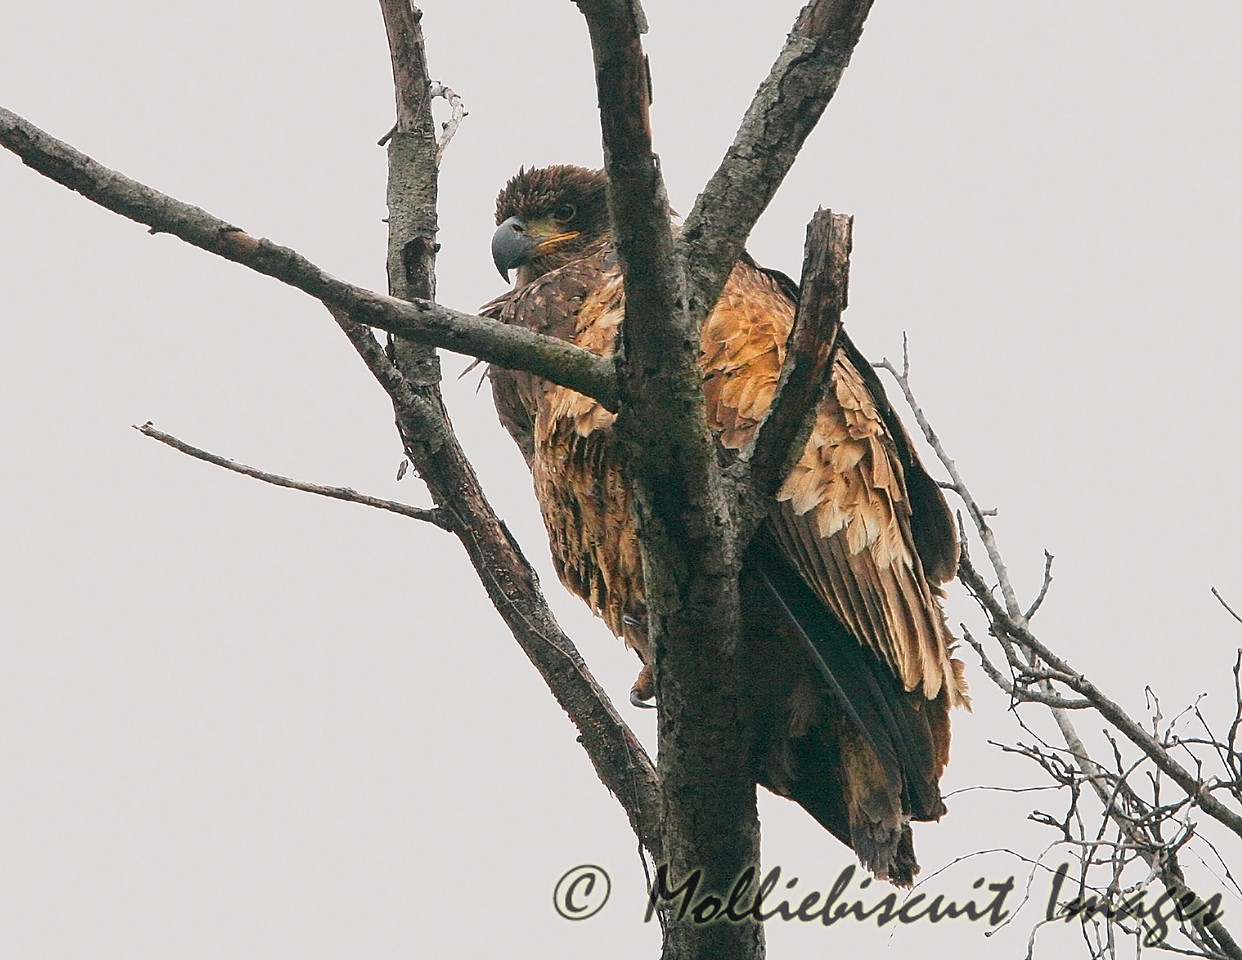 Immature eagle near Gray's Camp